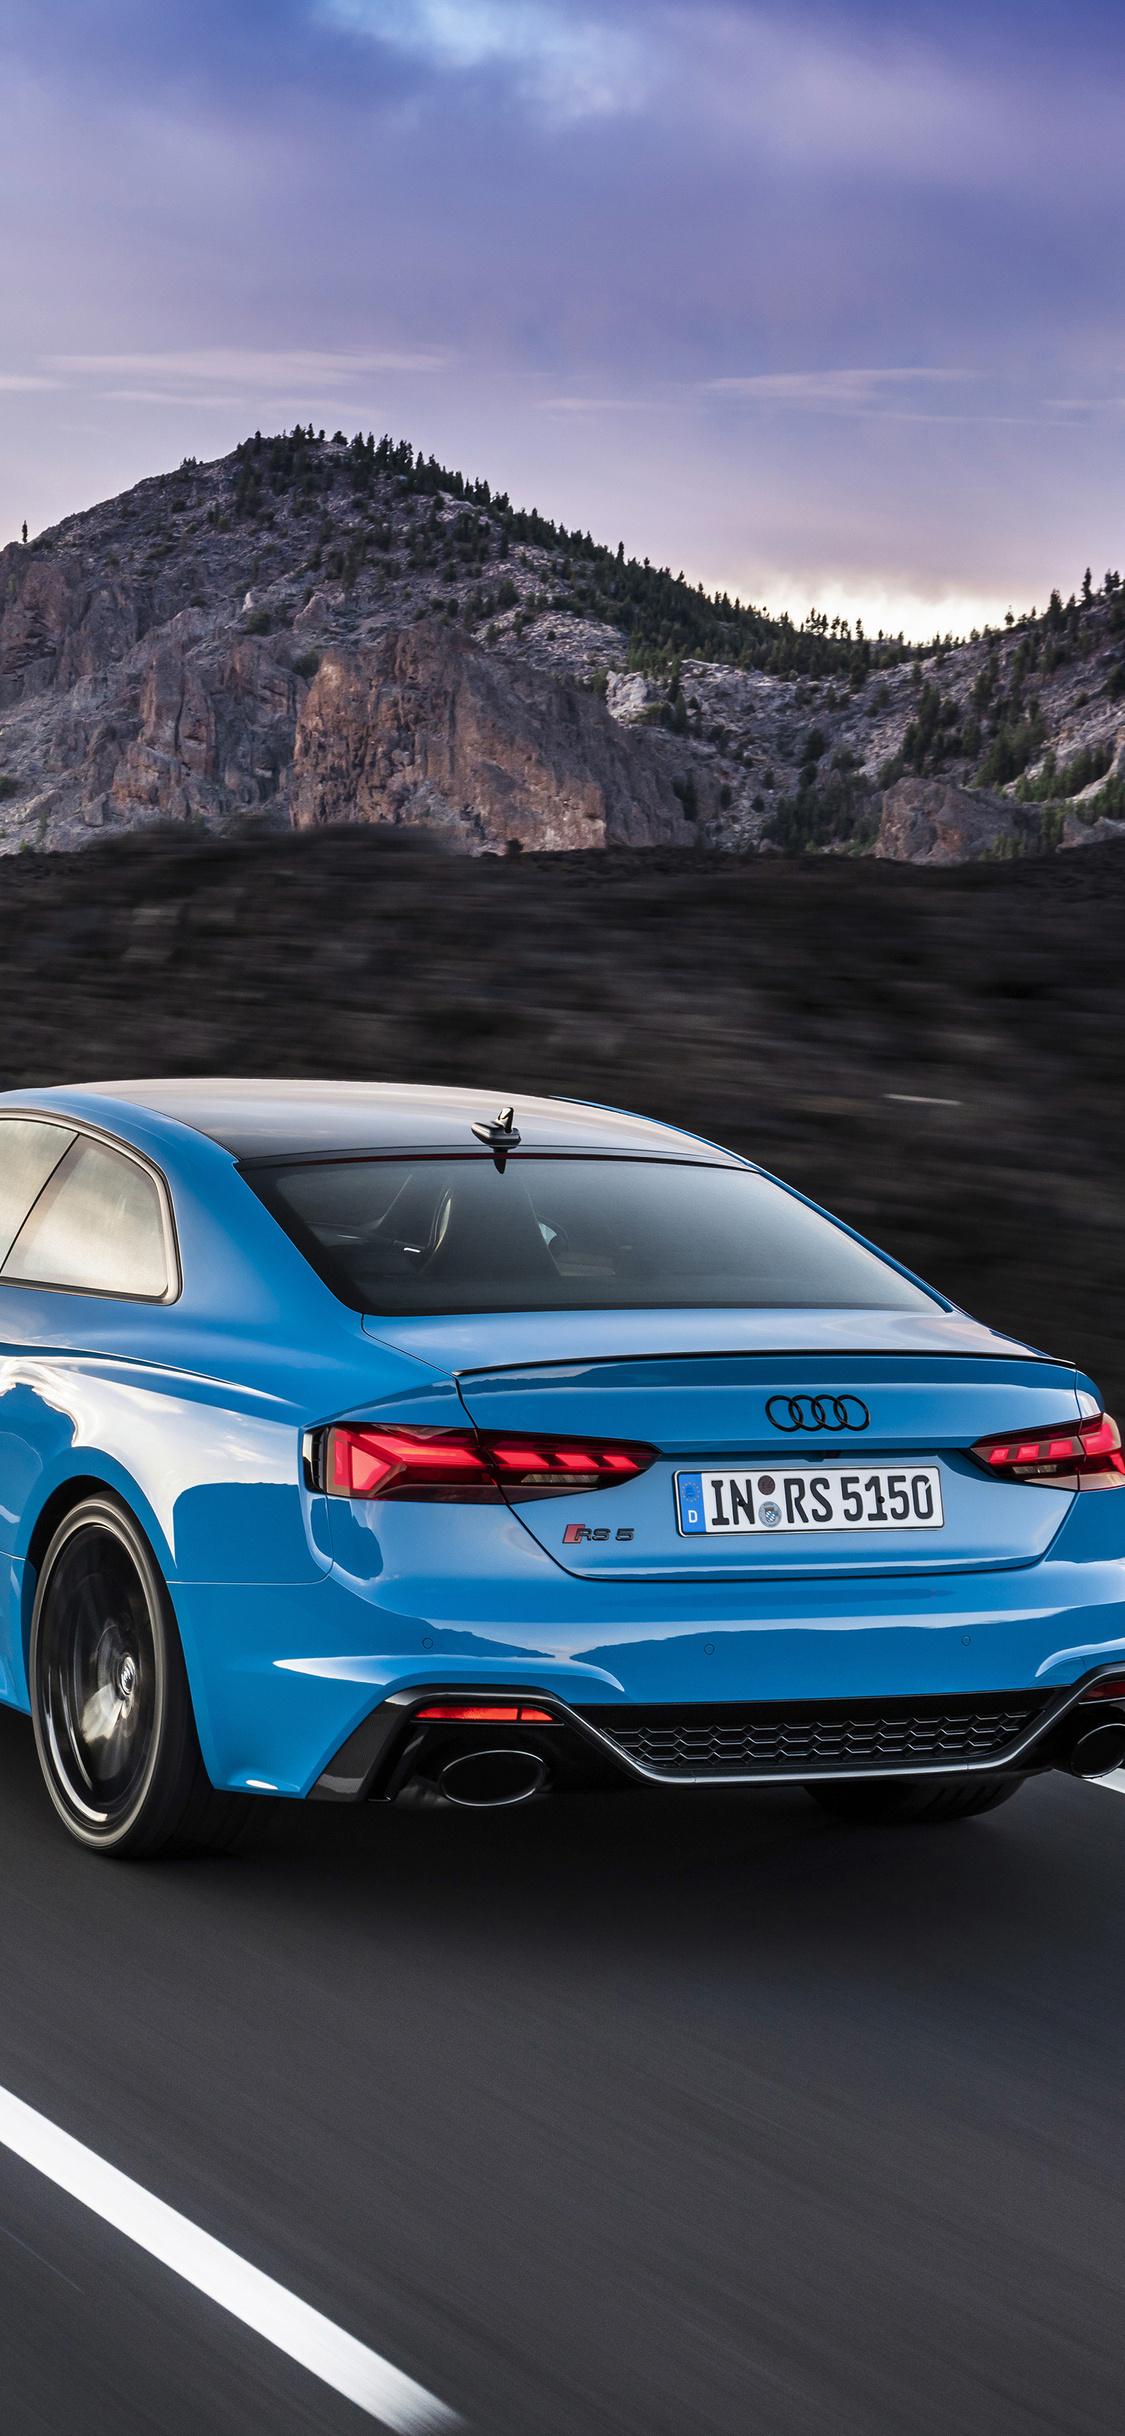 2020-audi-rs-5-coupe-5k-mq.jpg